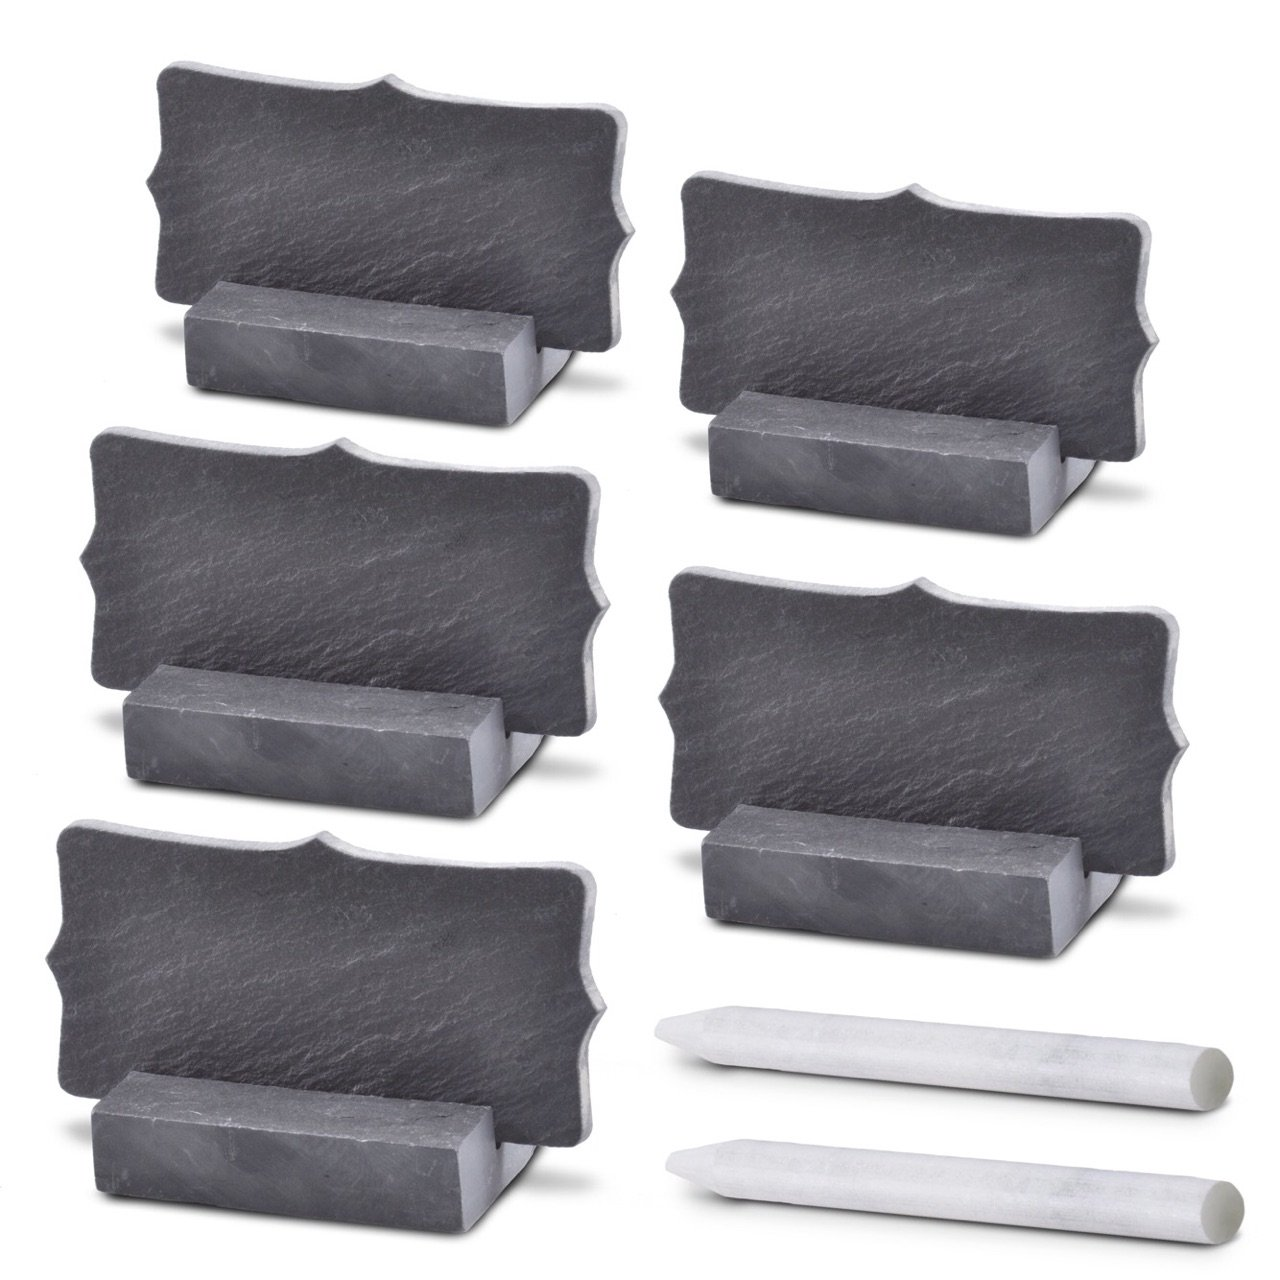 """Mini Chalkboard Stand 5-Pack – Erase Chalkboard Markers! - Reusable & Windproof Slate Blackboard Signs - 3.5"""" x 1.75"""" with Lace Edges (with 2 Pieces Chalk)"""